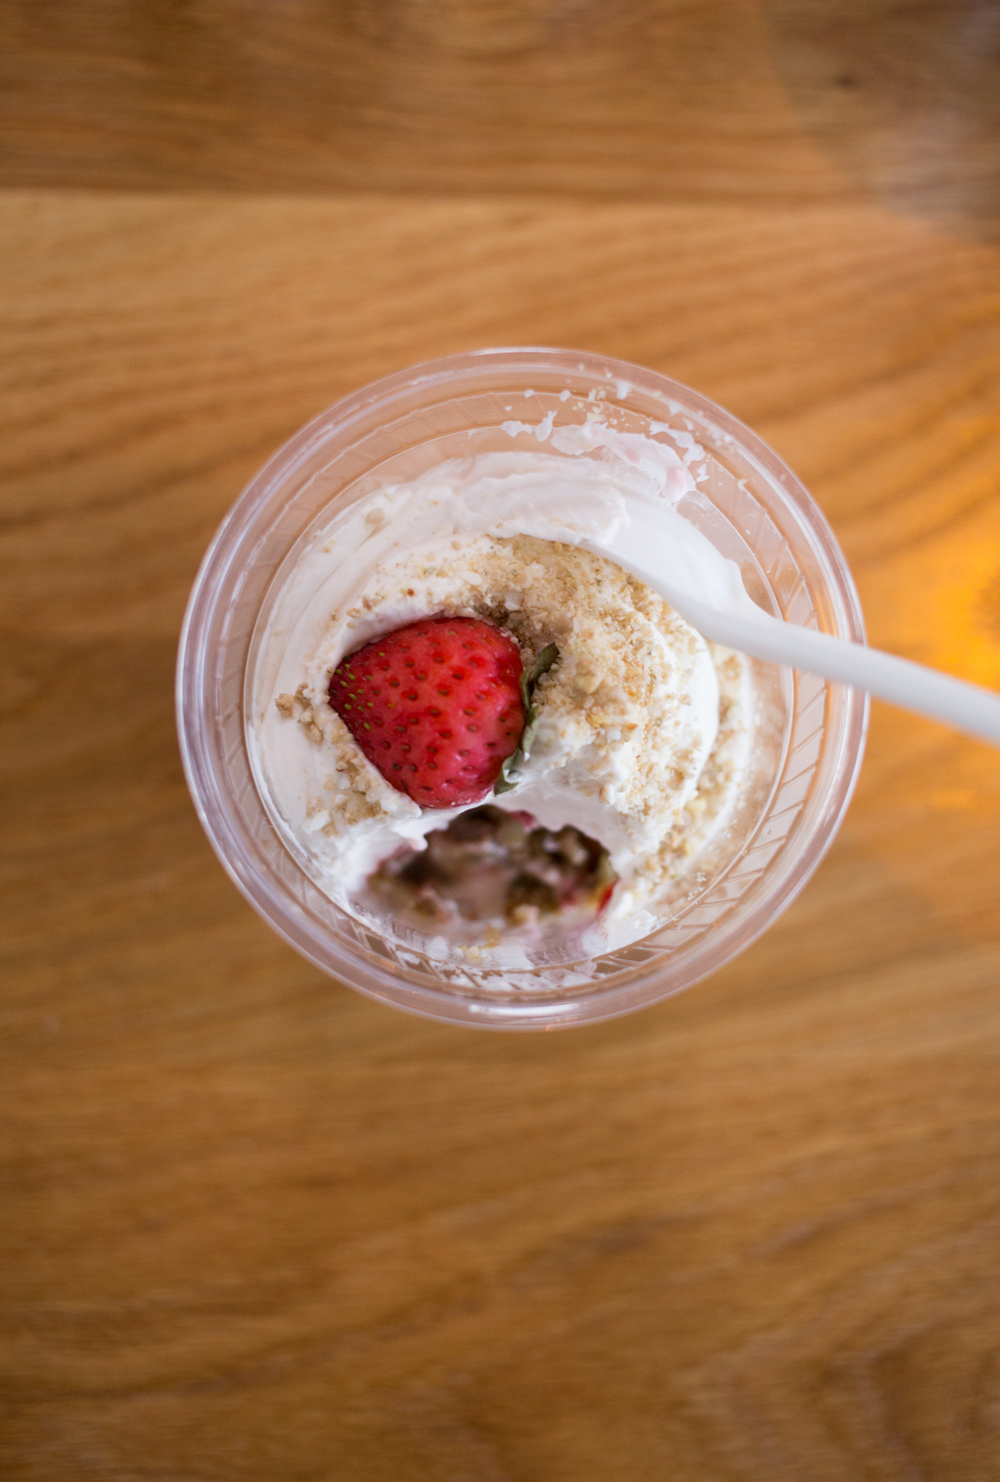 Freshness in a cup.